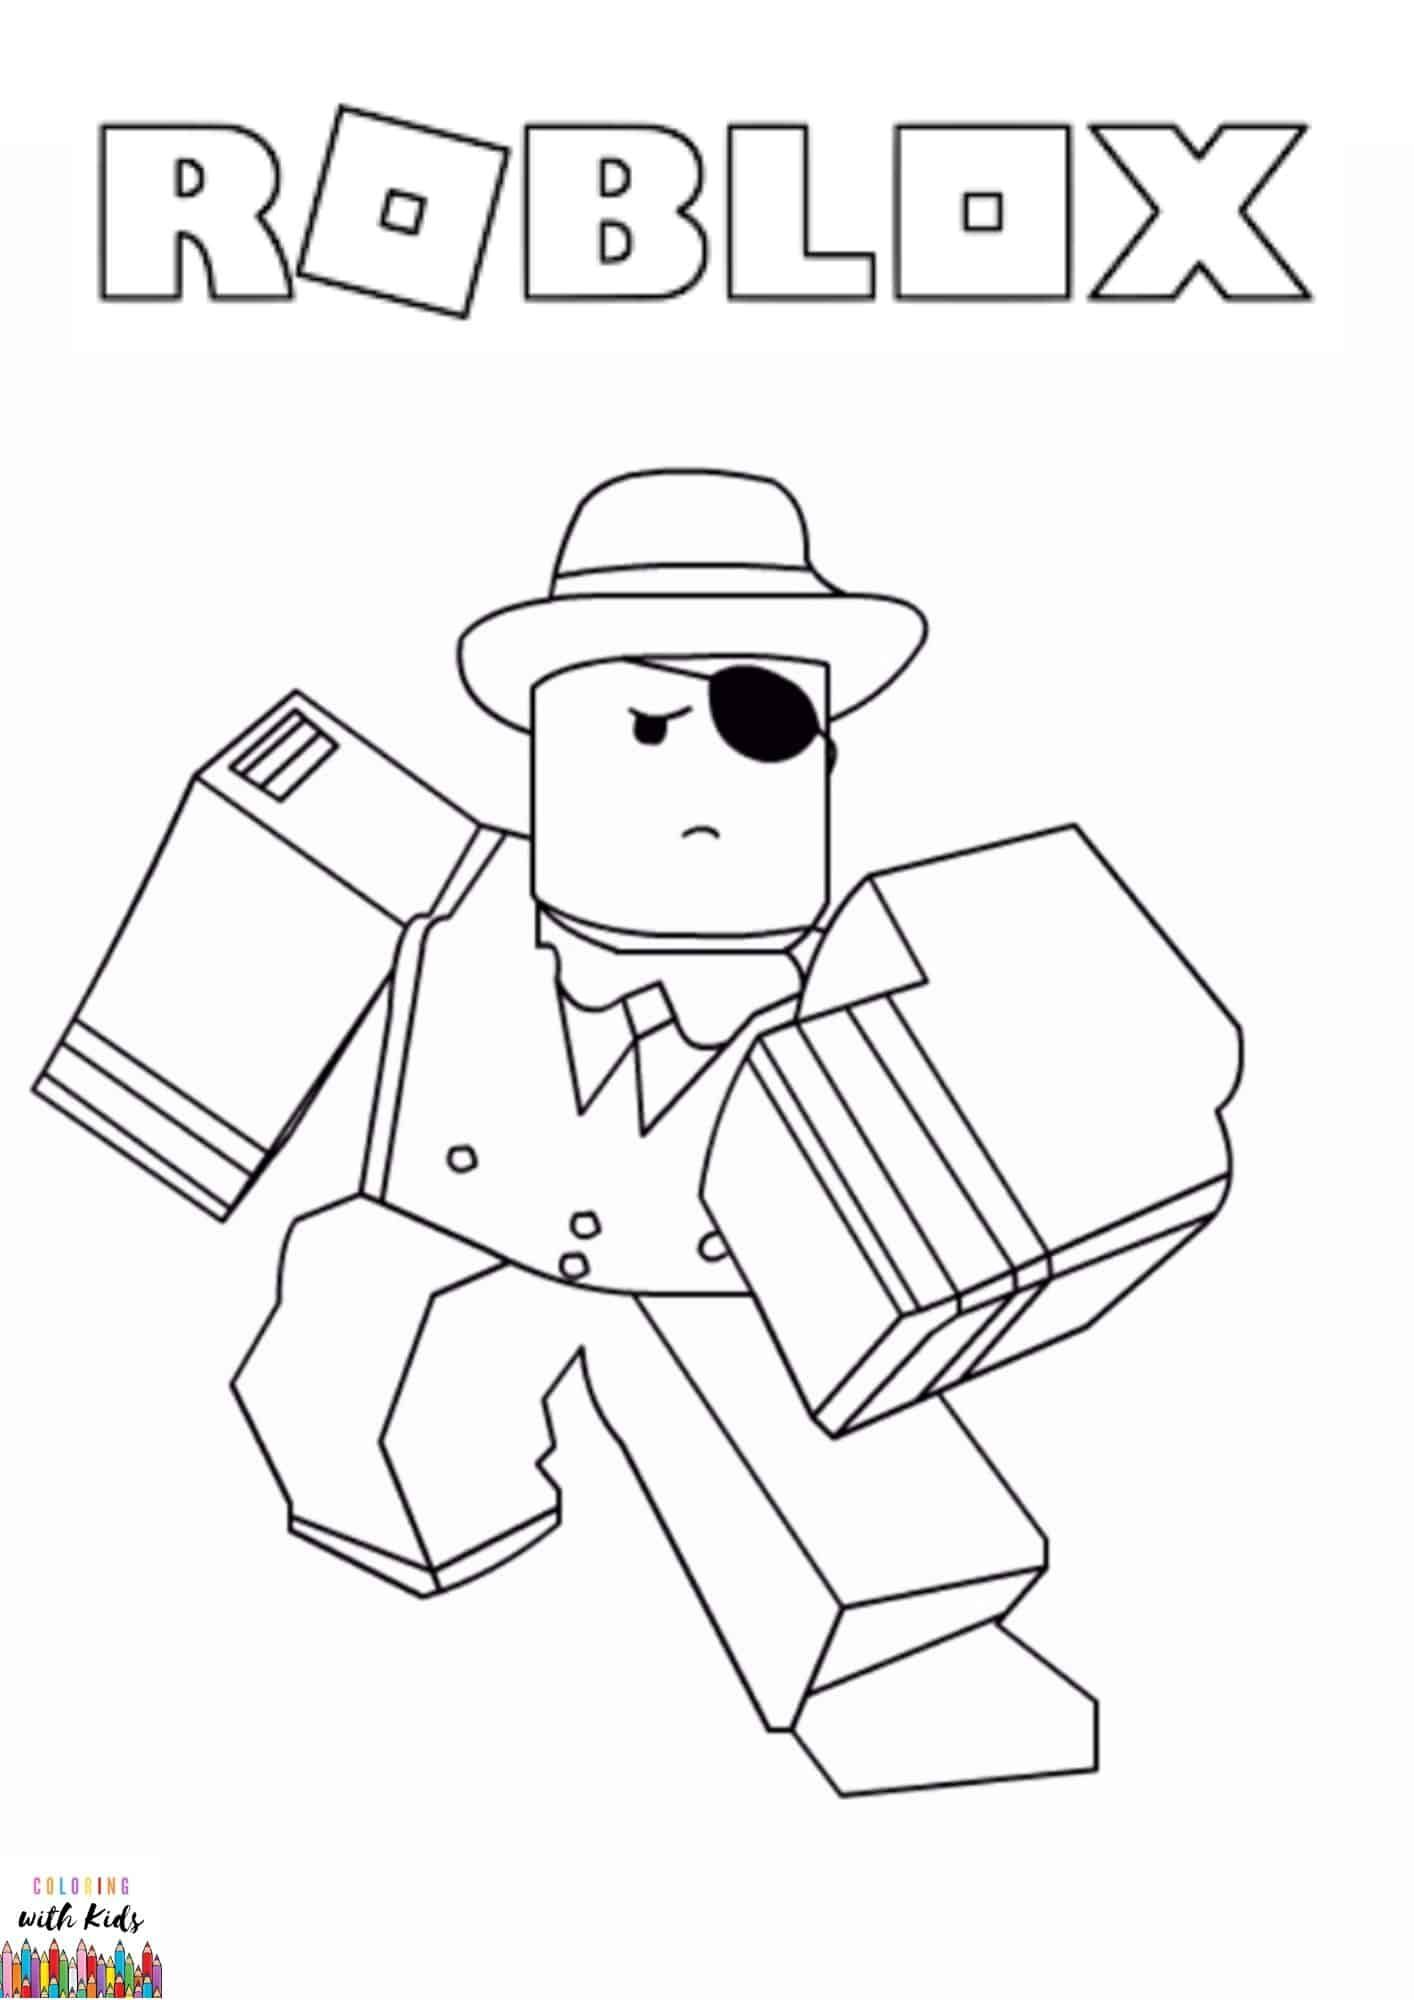 Roblox Coloring Page Image Credit Roblox Avatar Drawing By Yadia Chenia Permission For Perso Avengers Coloring Pages Coloring Pages Avengers Coloring